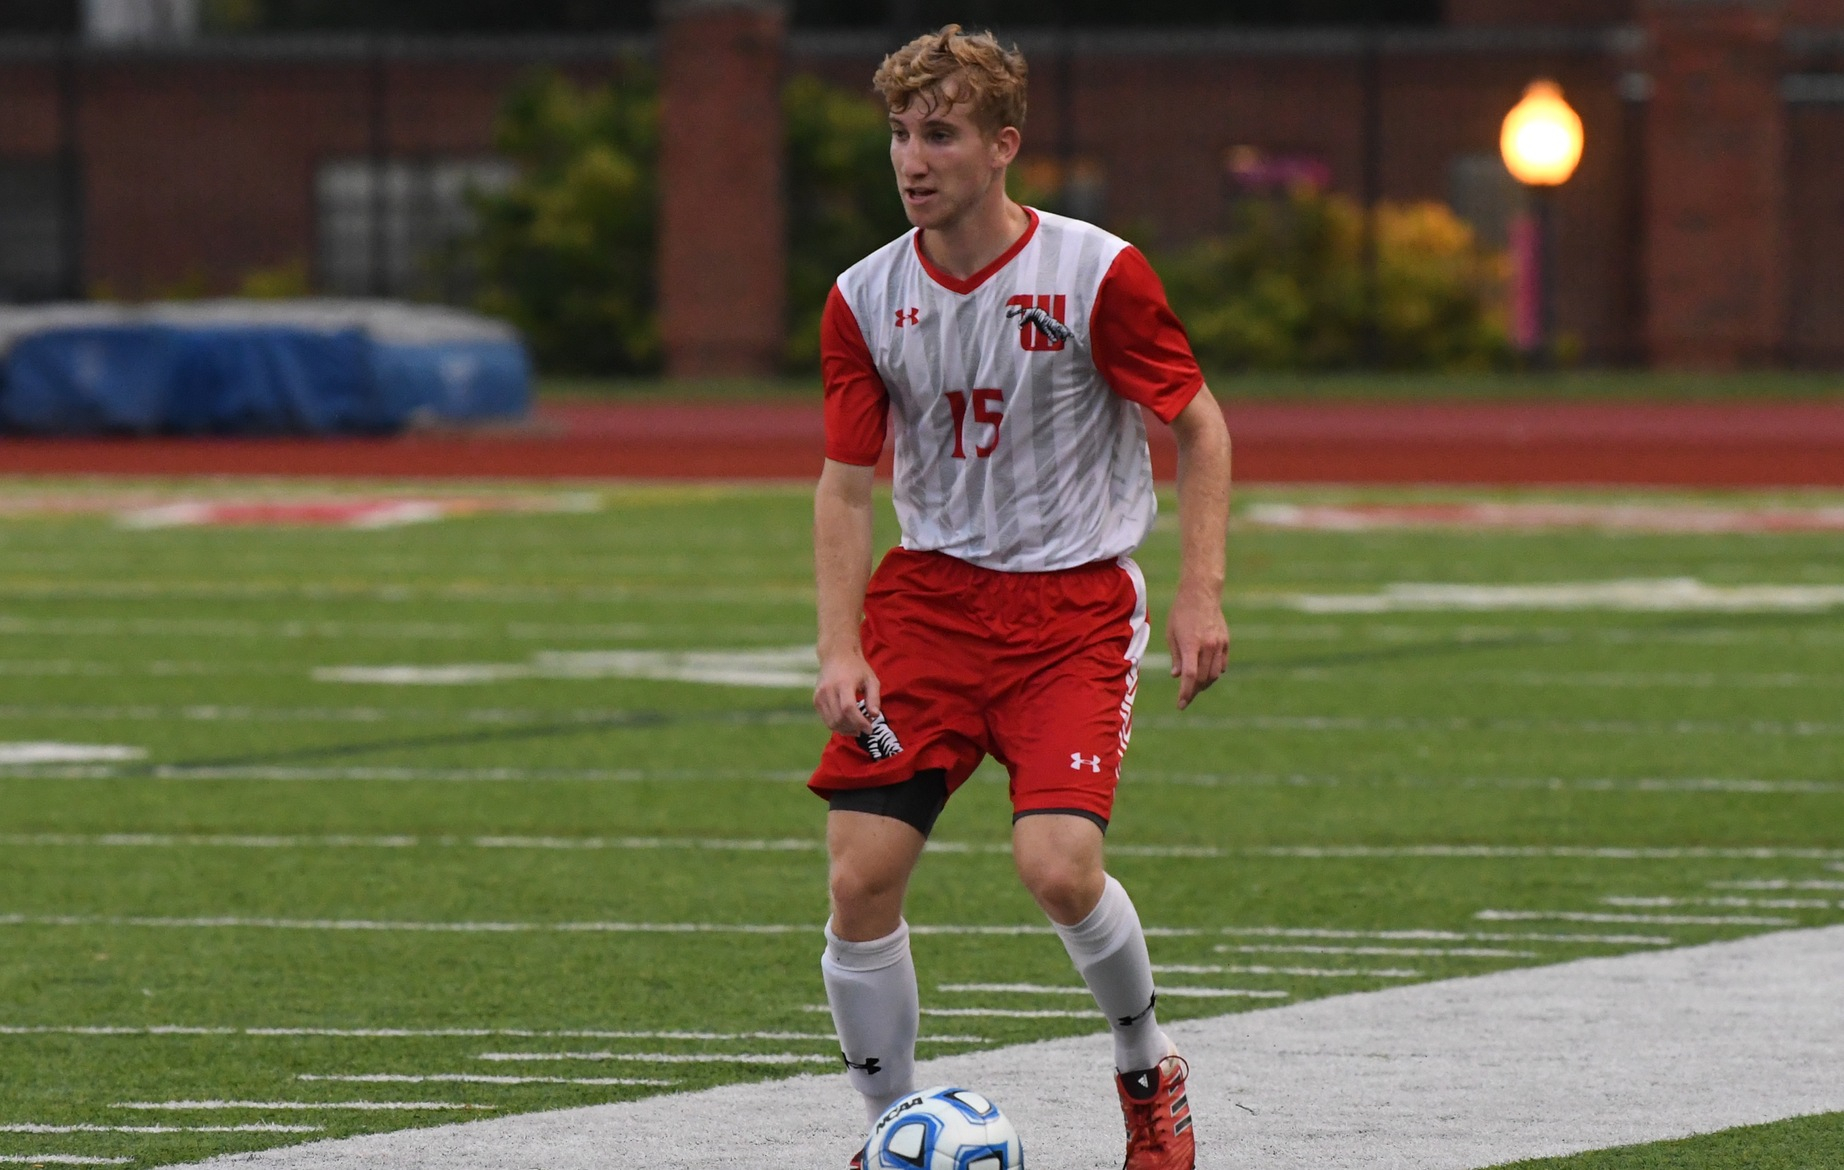 Junior Jack Smith bolstered a strong defensive effort in Wittenberg's narrow 1-0 loss against No. 5 Calvin